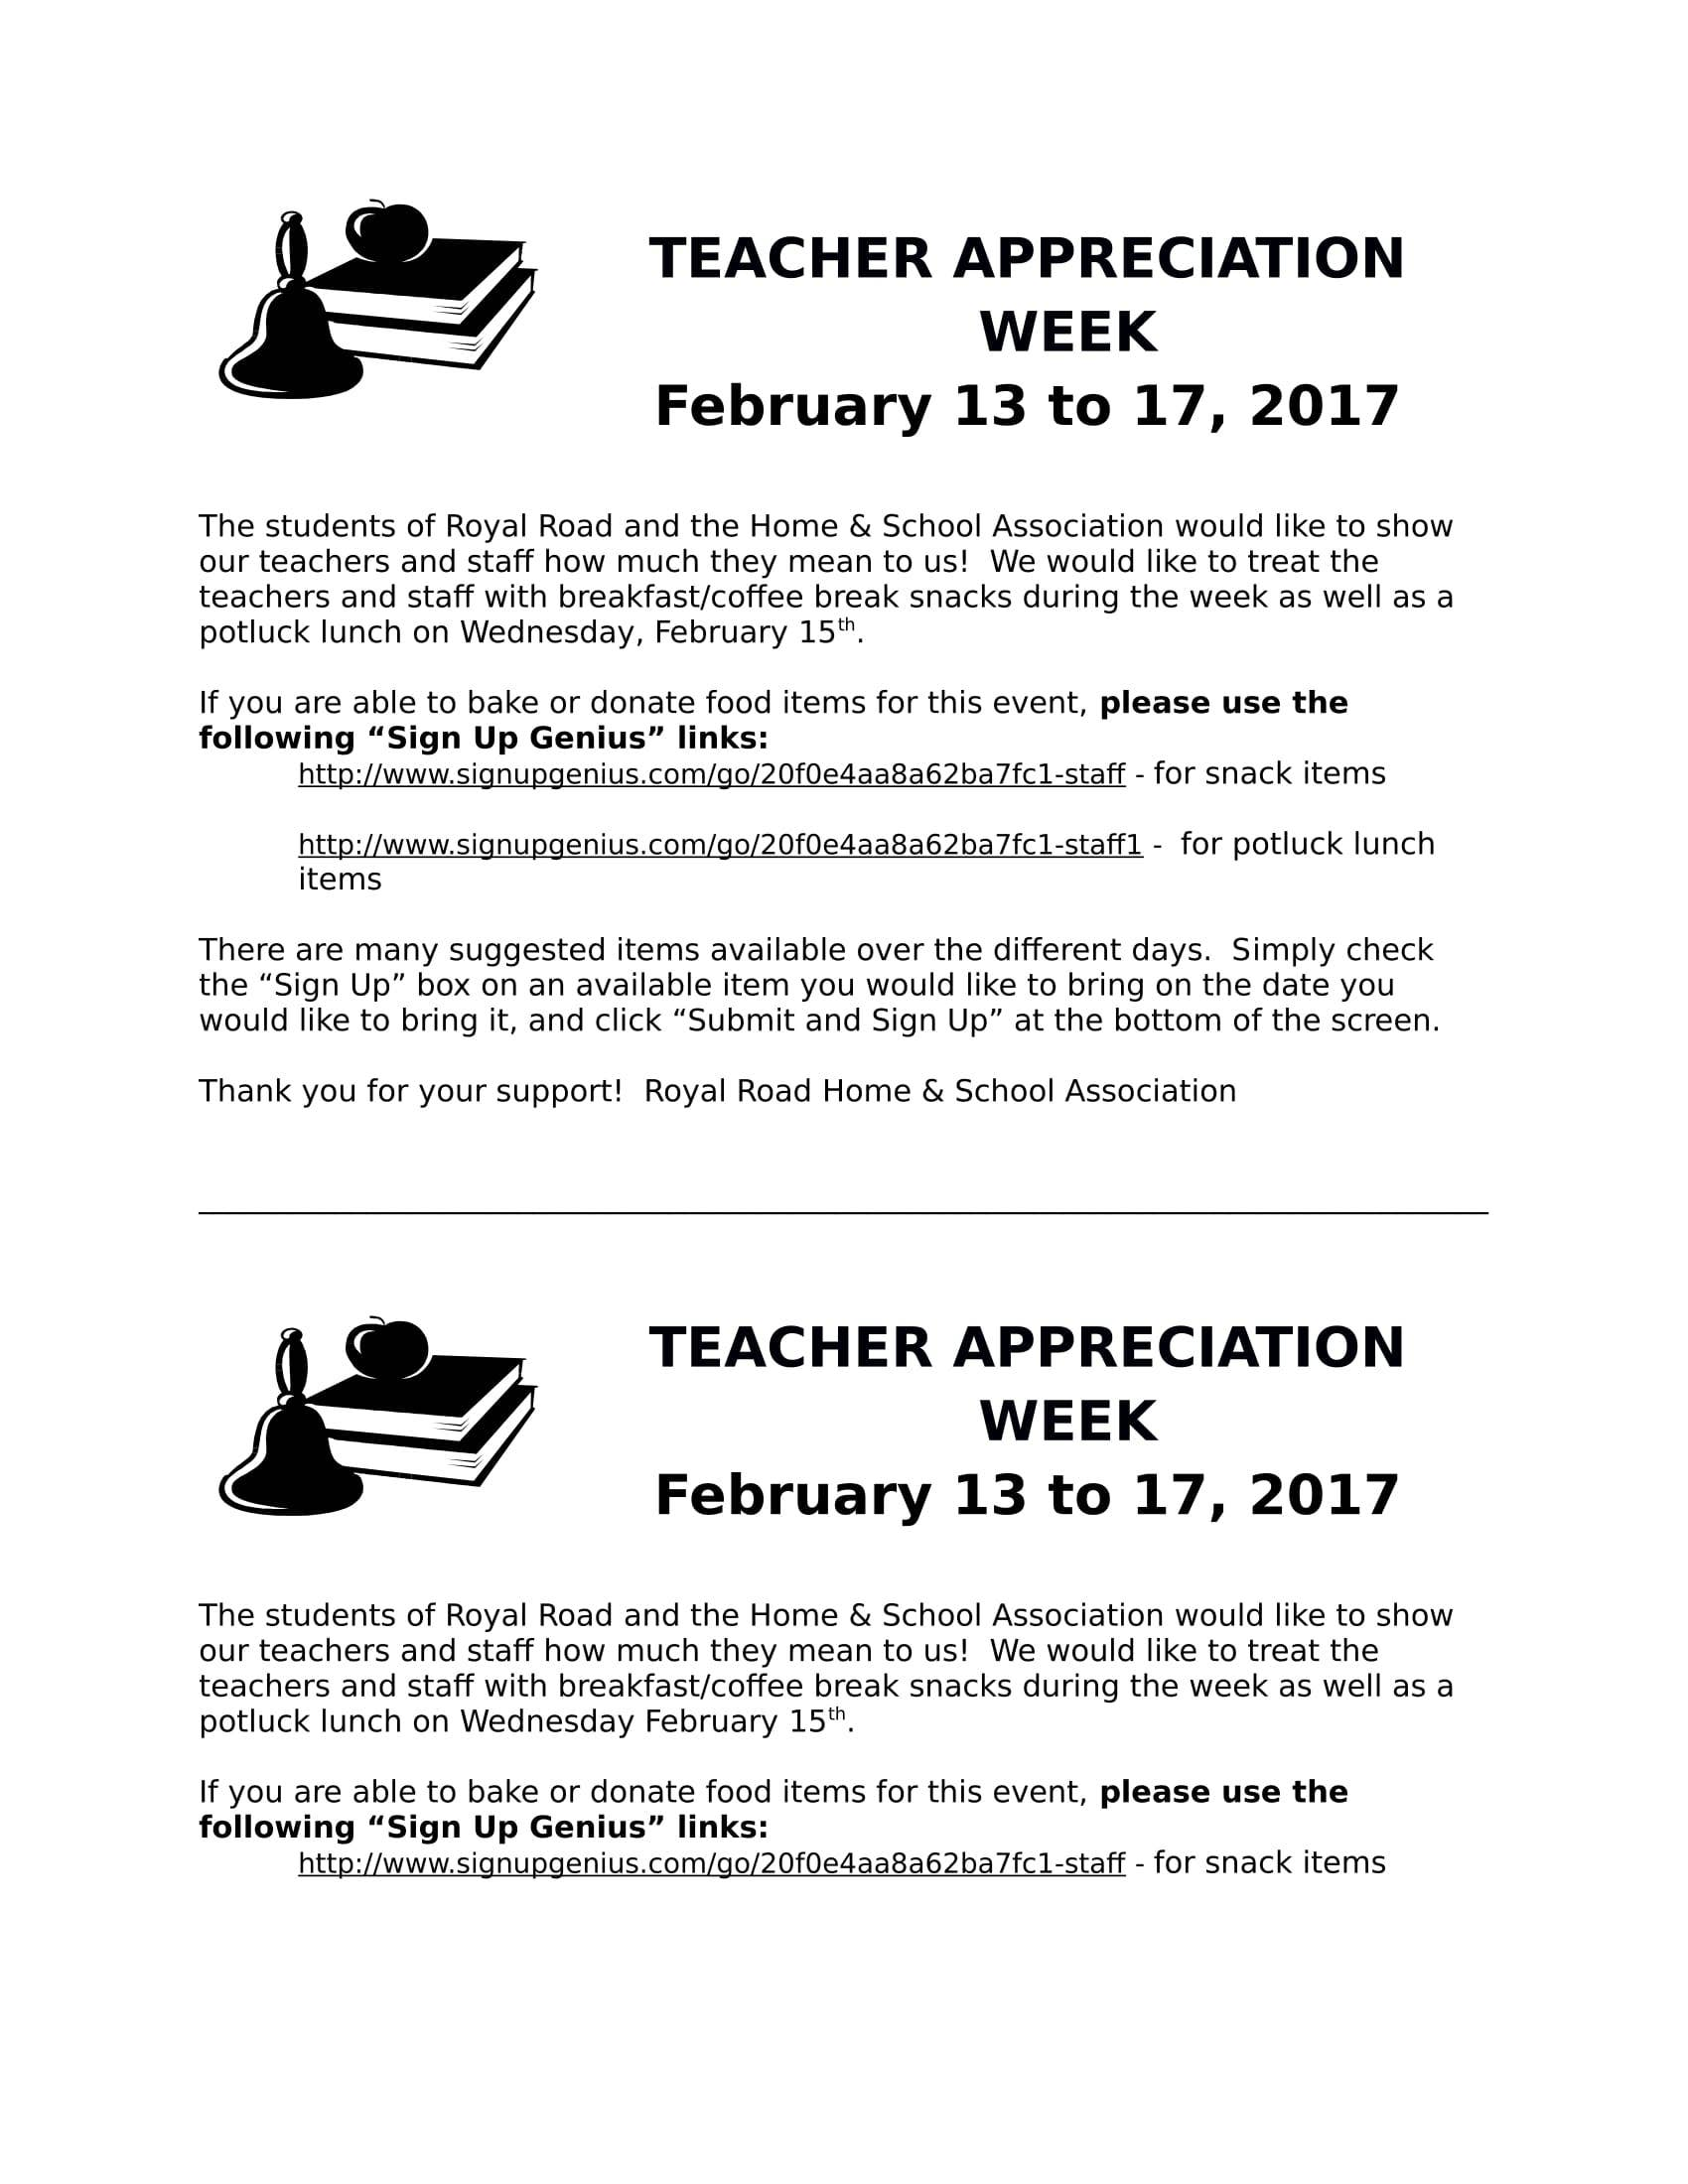 11 Teacher Appreciation Letter Templates Pdf Doc Free